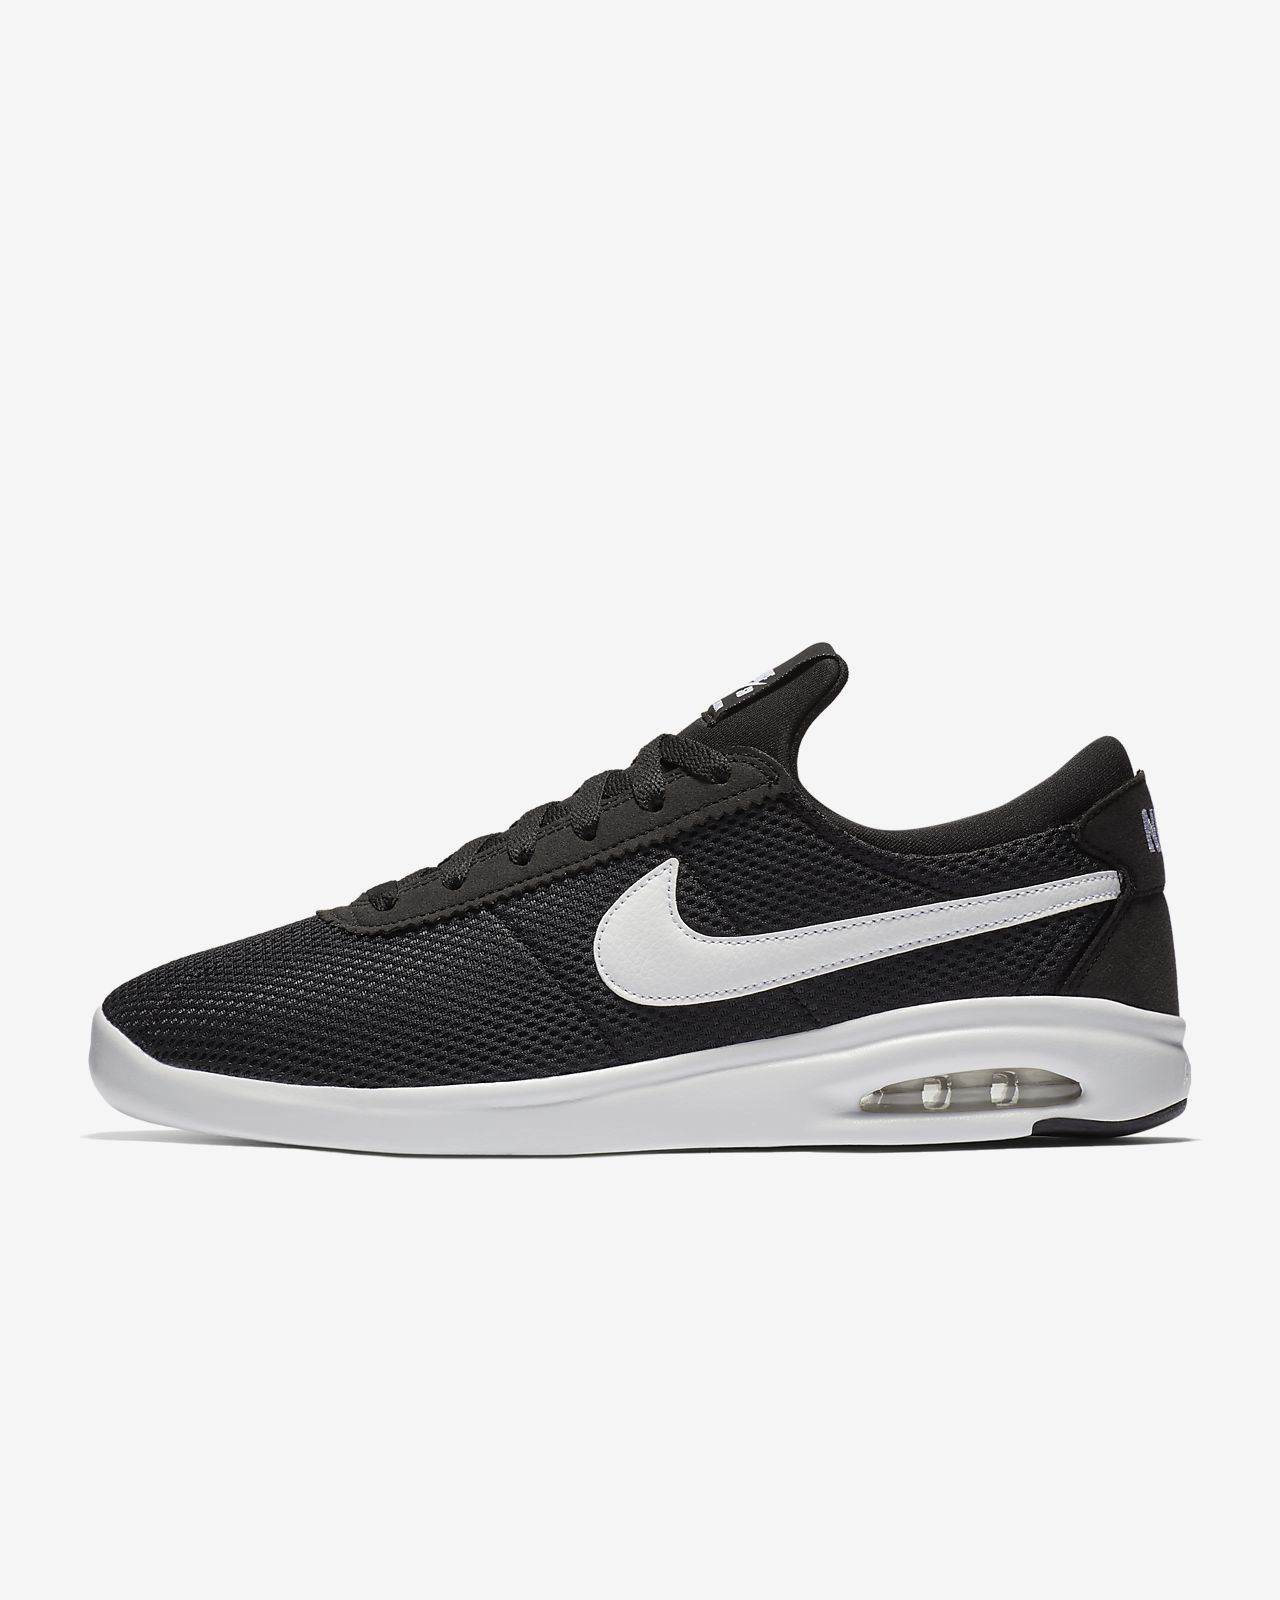 low priced 89caa 49d83 ... Chaussure de skateboard Nike SB Air Max Bruin Vapor pour Homme